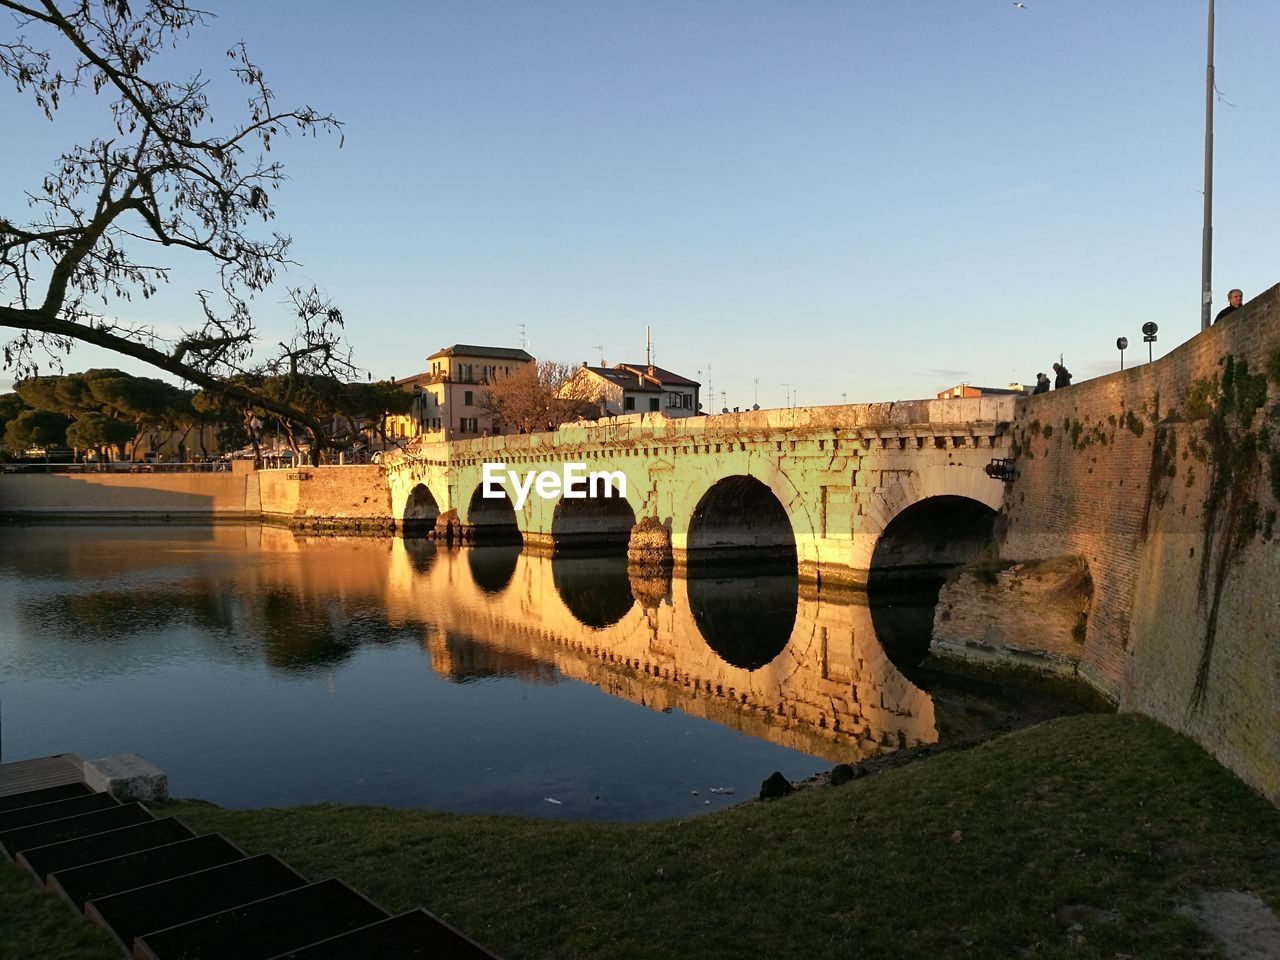 architecture, built structure, water, sky, bridge, nature, bridge - man made structure, plant, connection, river, tree, arch, clear sky, arch bridge, day, building exterior, no people, transportation, reflection, outdoors